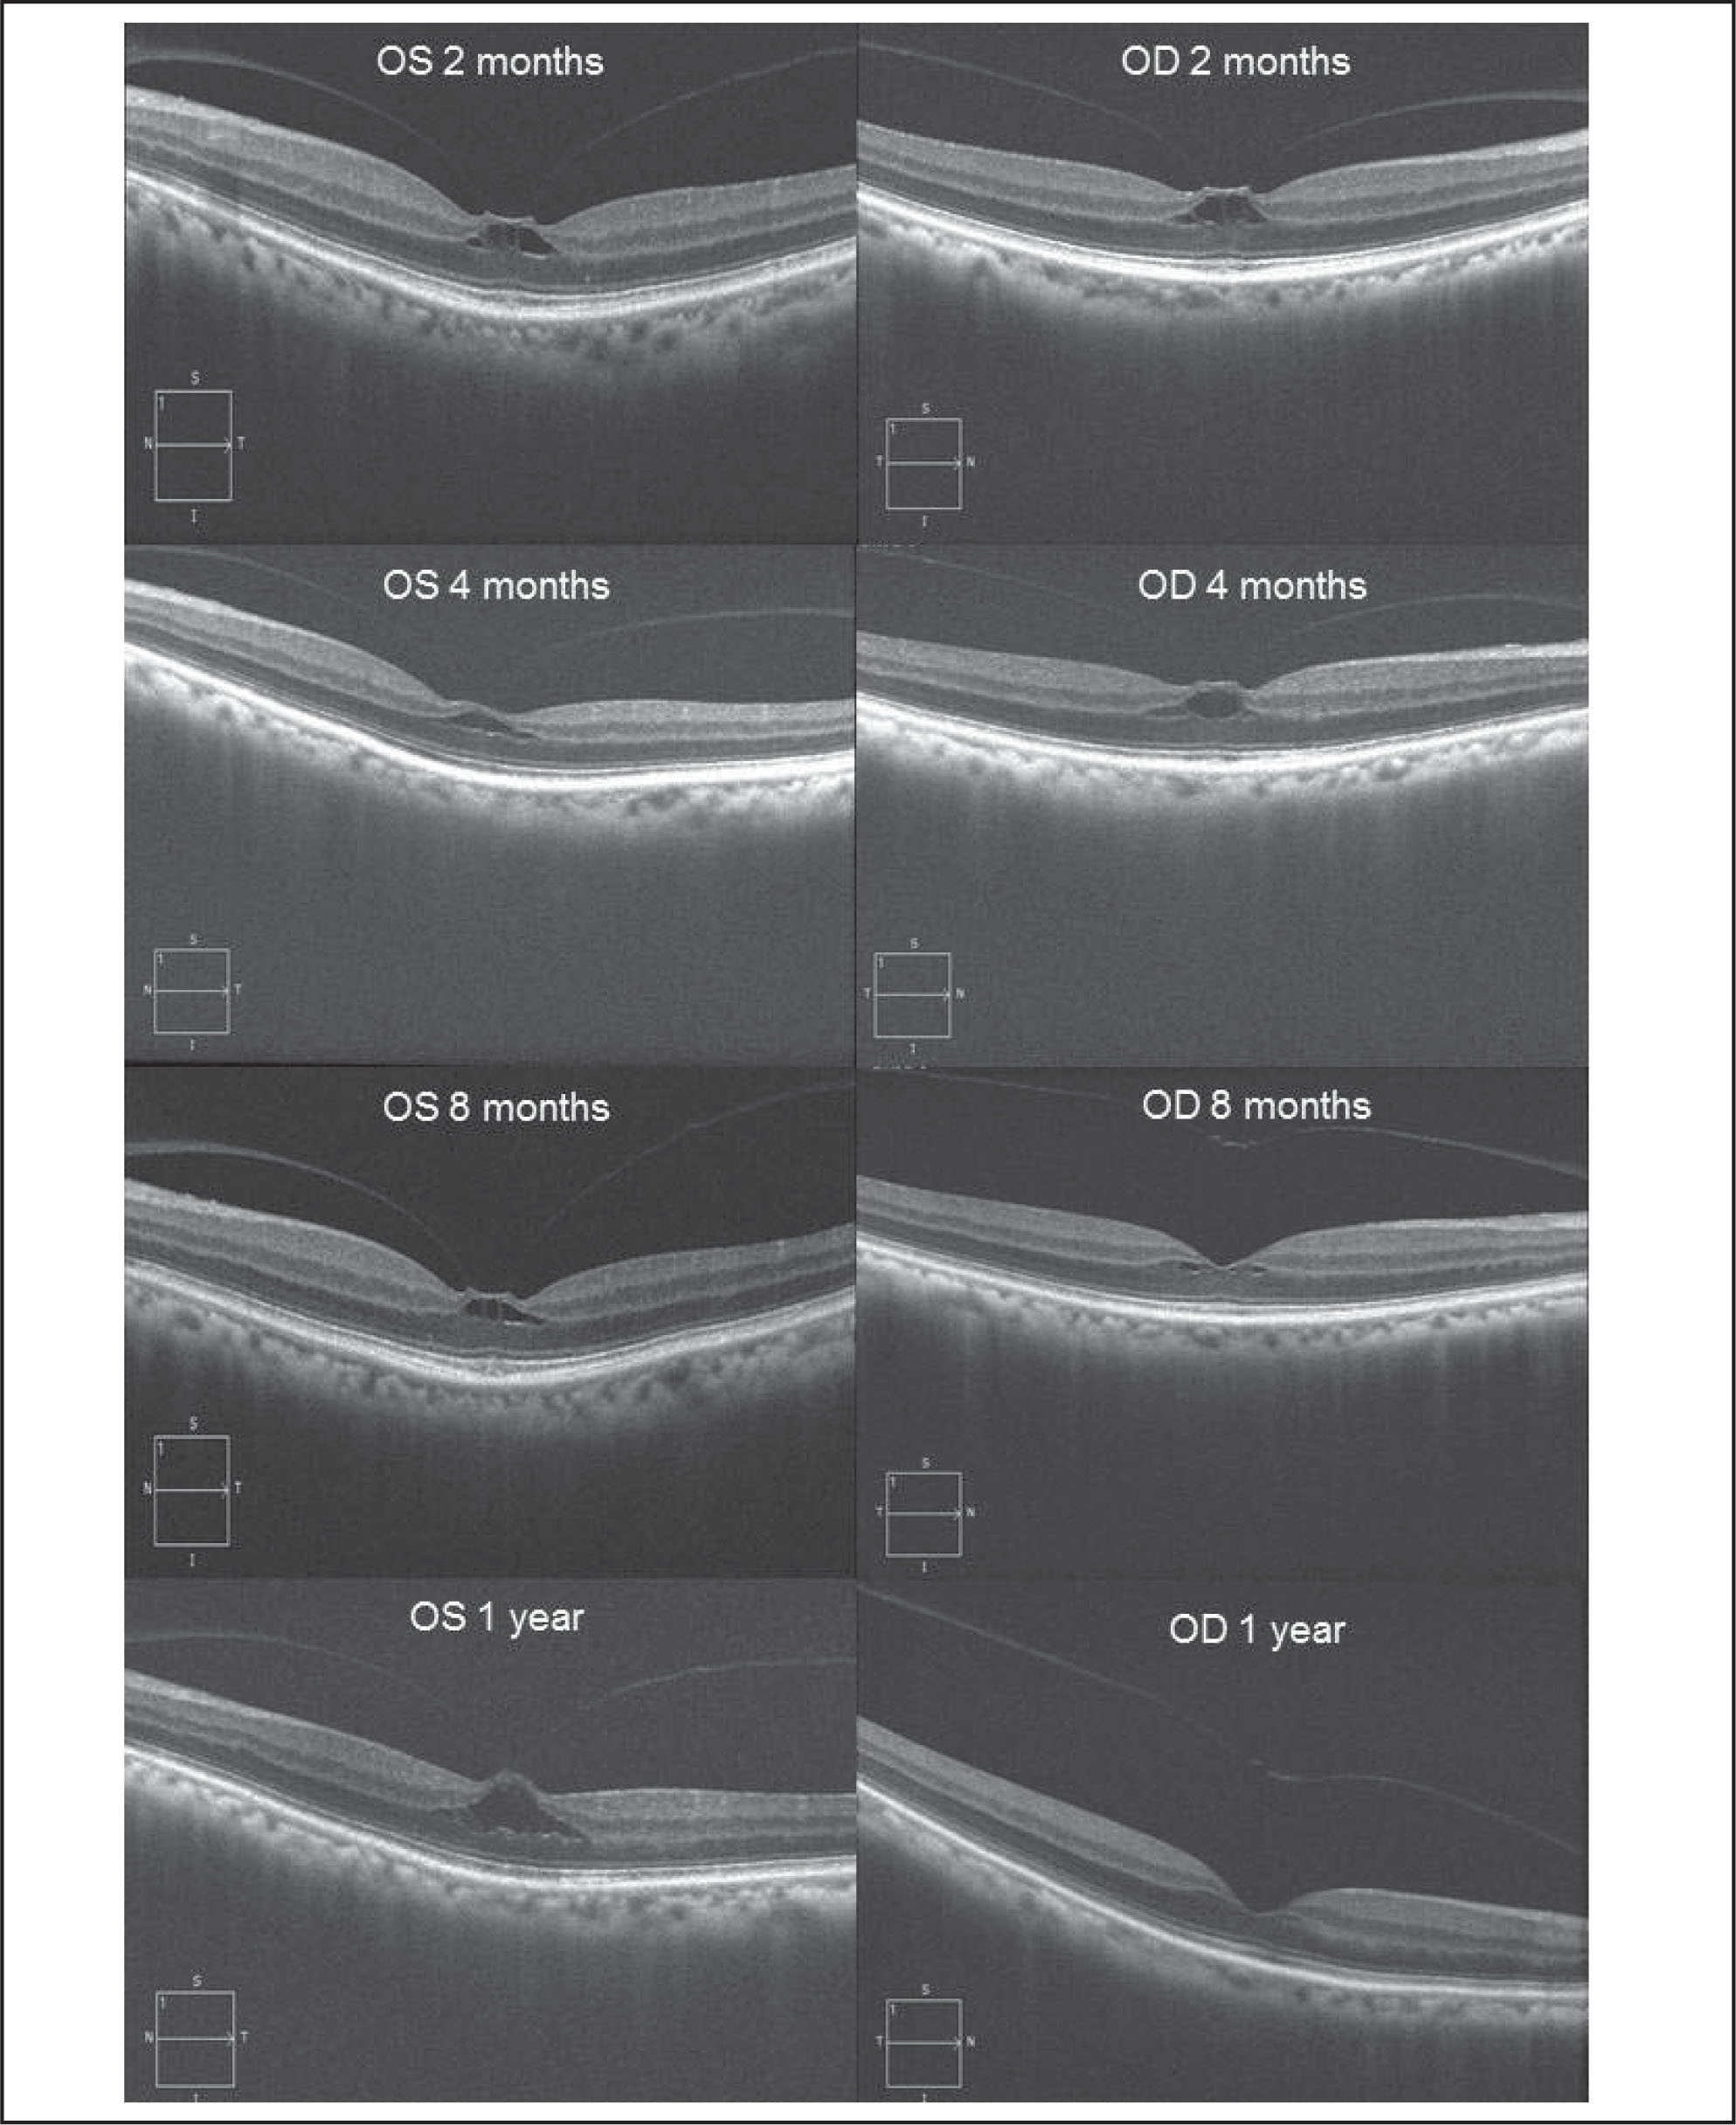 "Follow-up optical coherence tomography images from both eyes performed at 2, 4, and 8 months, and 1 year. A complete posterior vitreous detachment was noted in the right eye at the 8-month follow up. The foveal pseudo cyst and outer retinal changes resolved in the right eye by 1 year. The foveal pseudo cyst was enlarging in the left eye as a result of increased ""traction"" from the detaching posterior vitreous. The posterior vitreous was still attached at 1 year."